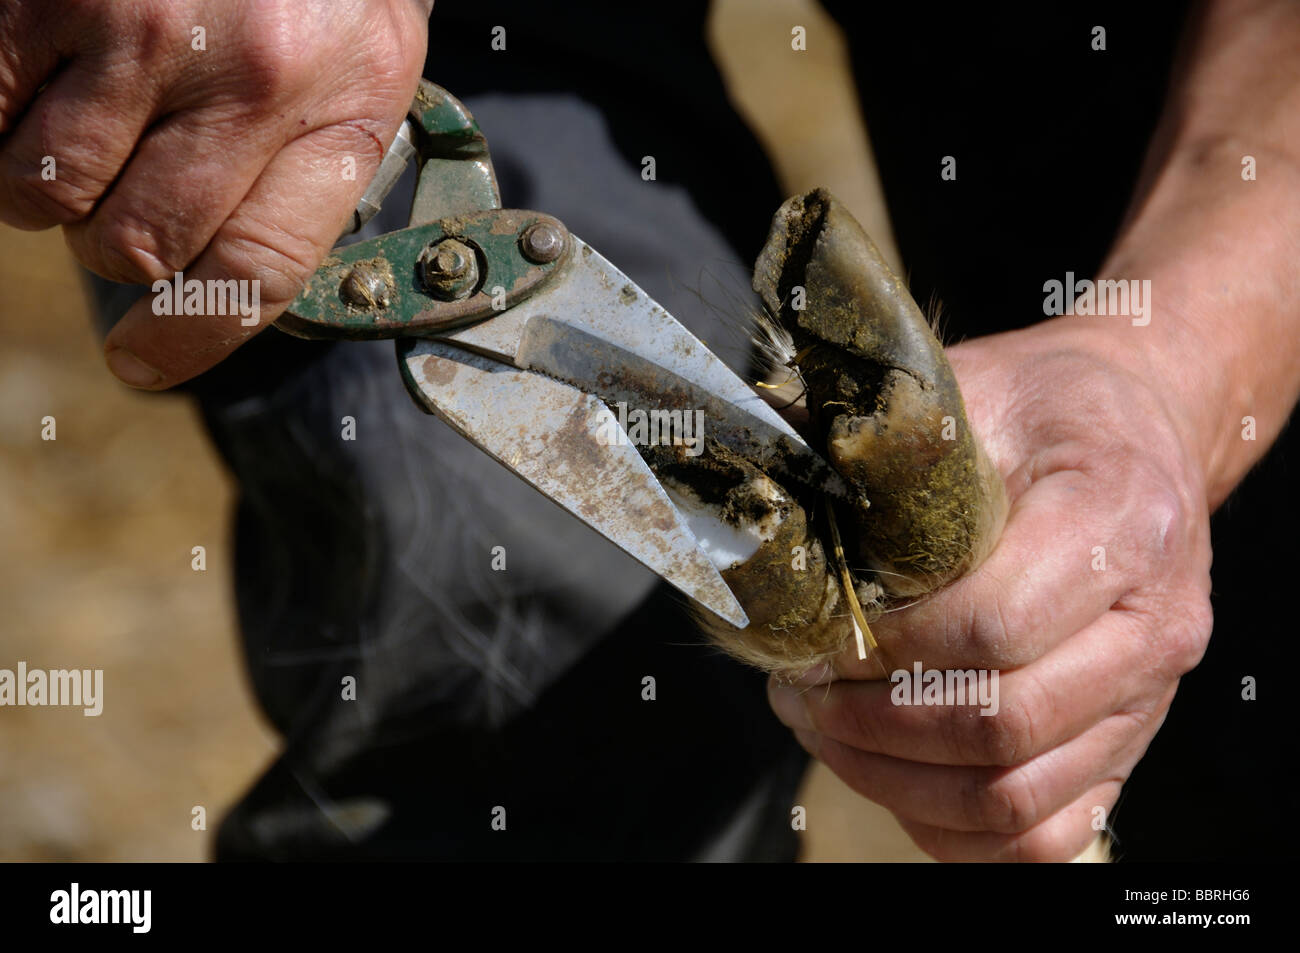 Stock photo of a Goats hooves being cut - Stock Image